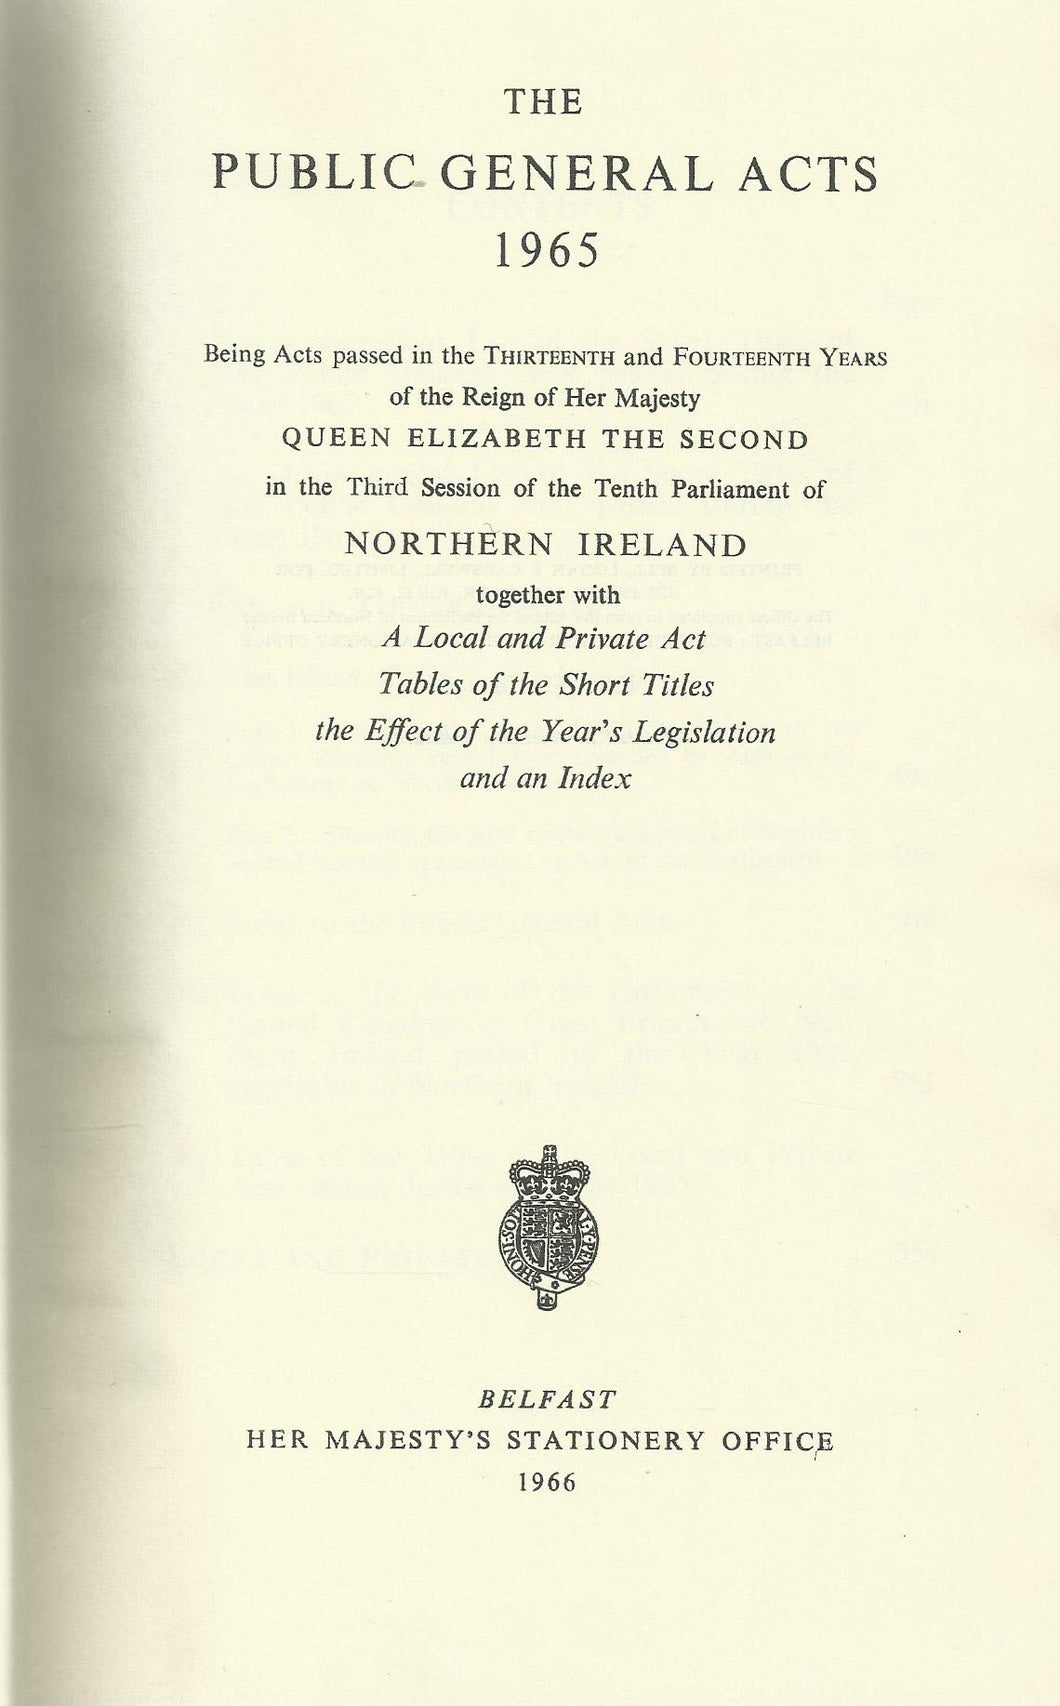 Northern Ireland - The Public General Acts 1965